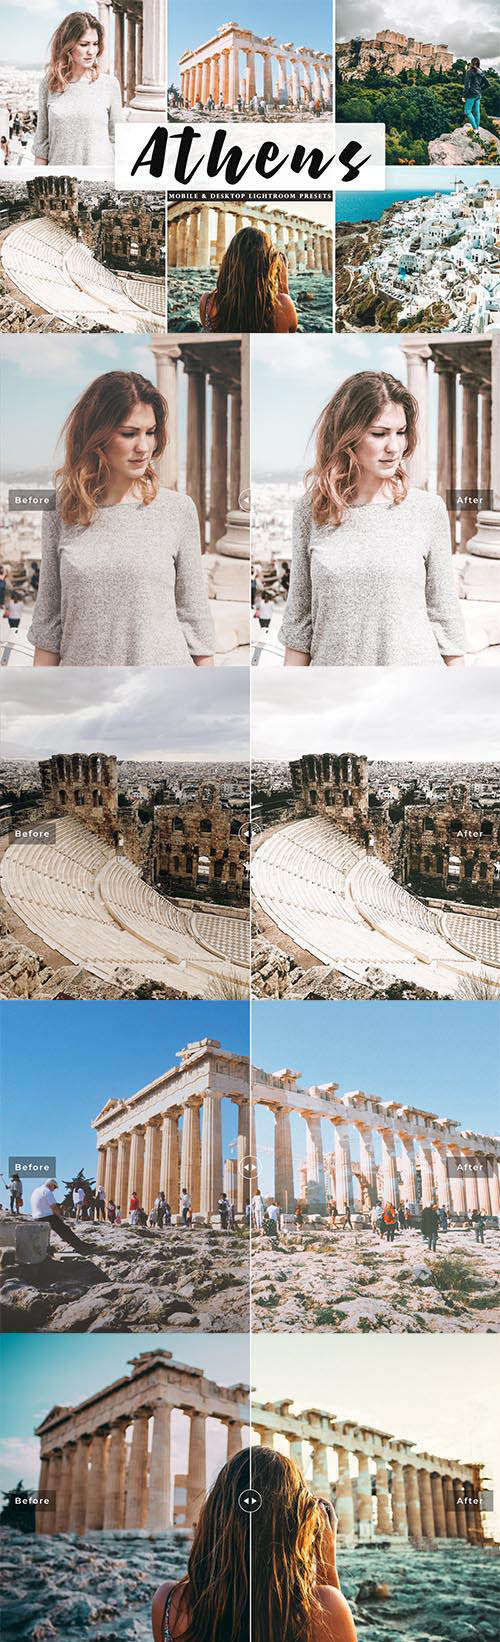 Athens Mobile & Desktop Lightroom Presets